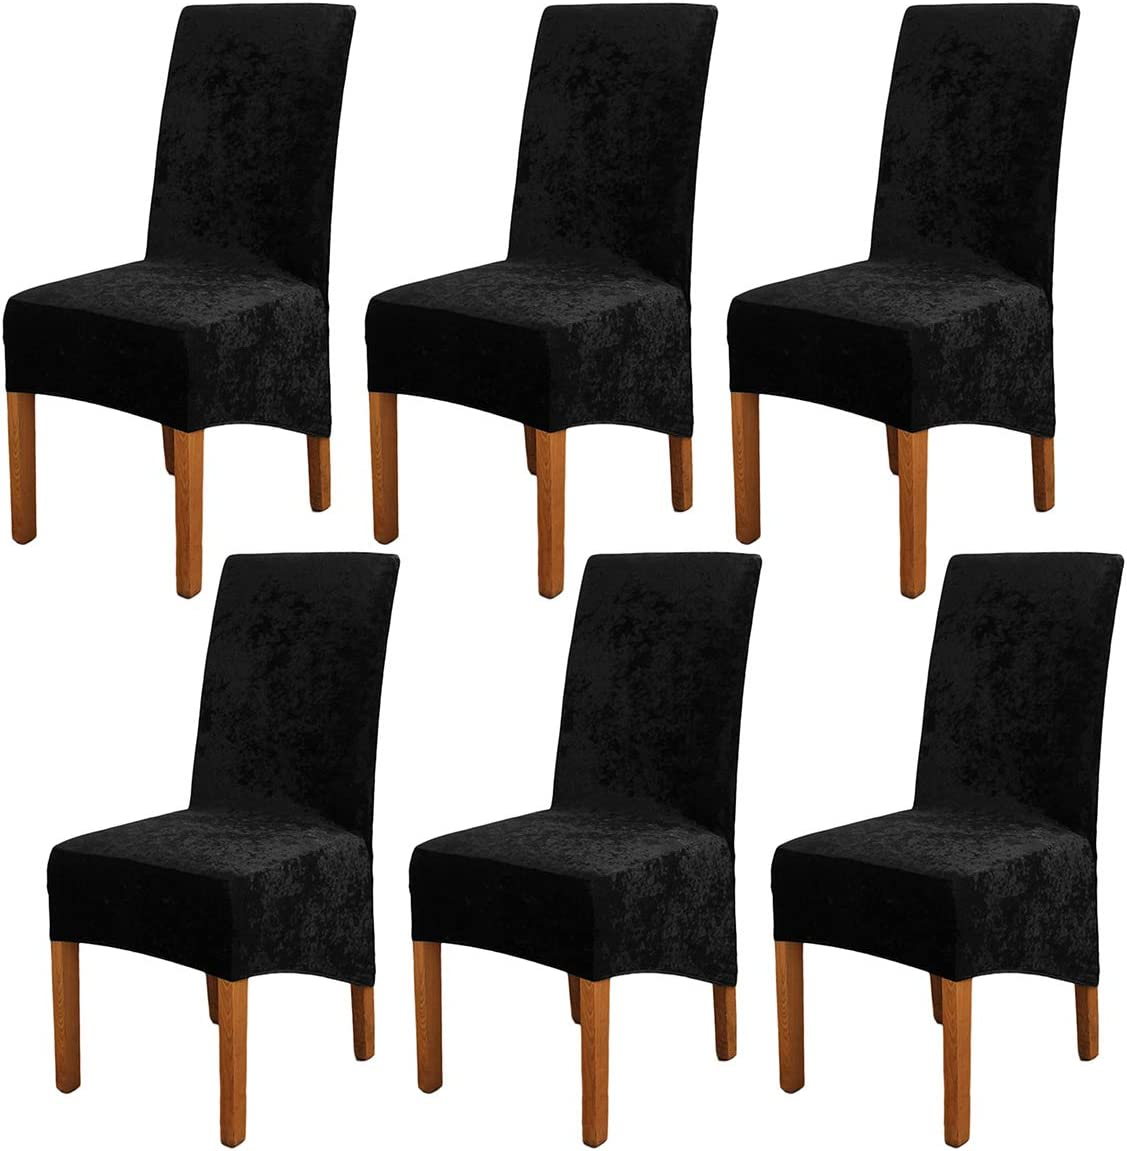 Mingfuxin Crushed Velvet XL Dining Chair Covers,2//4//6 Pack Stretch Chair Protective Slipcover,Elastic Chair Protector Seat Covers for Dining Room Wedding Banquet Party Decoration 4 Pack, Champagne